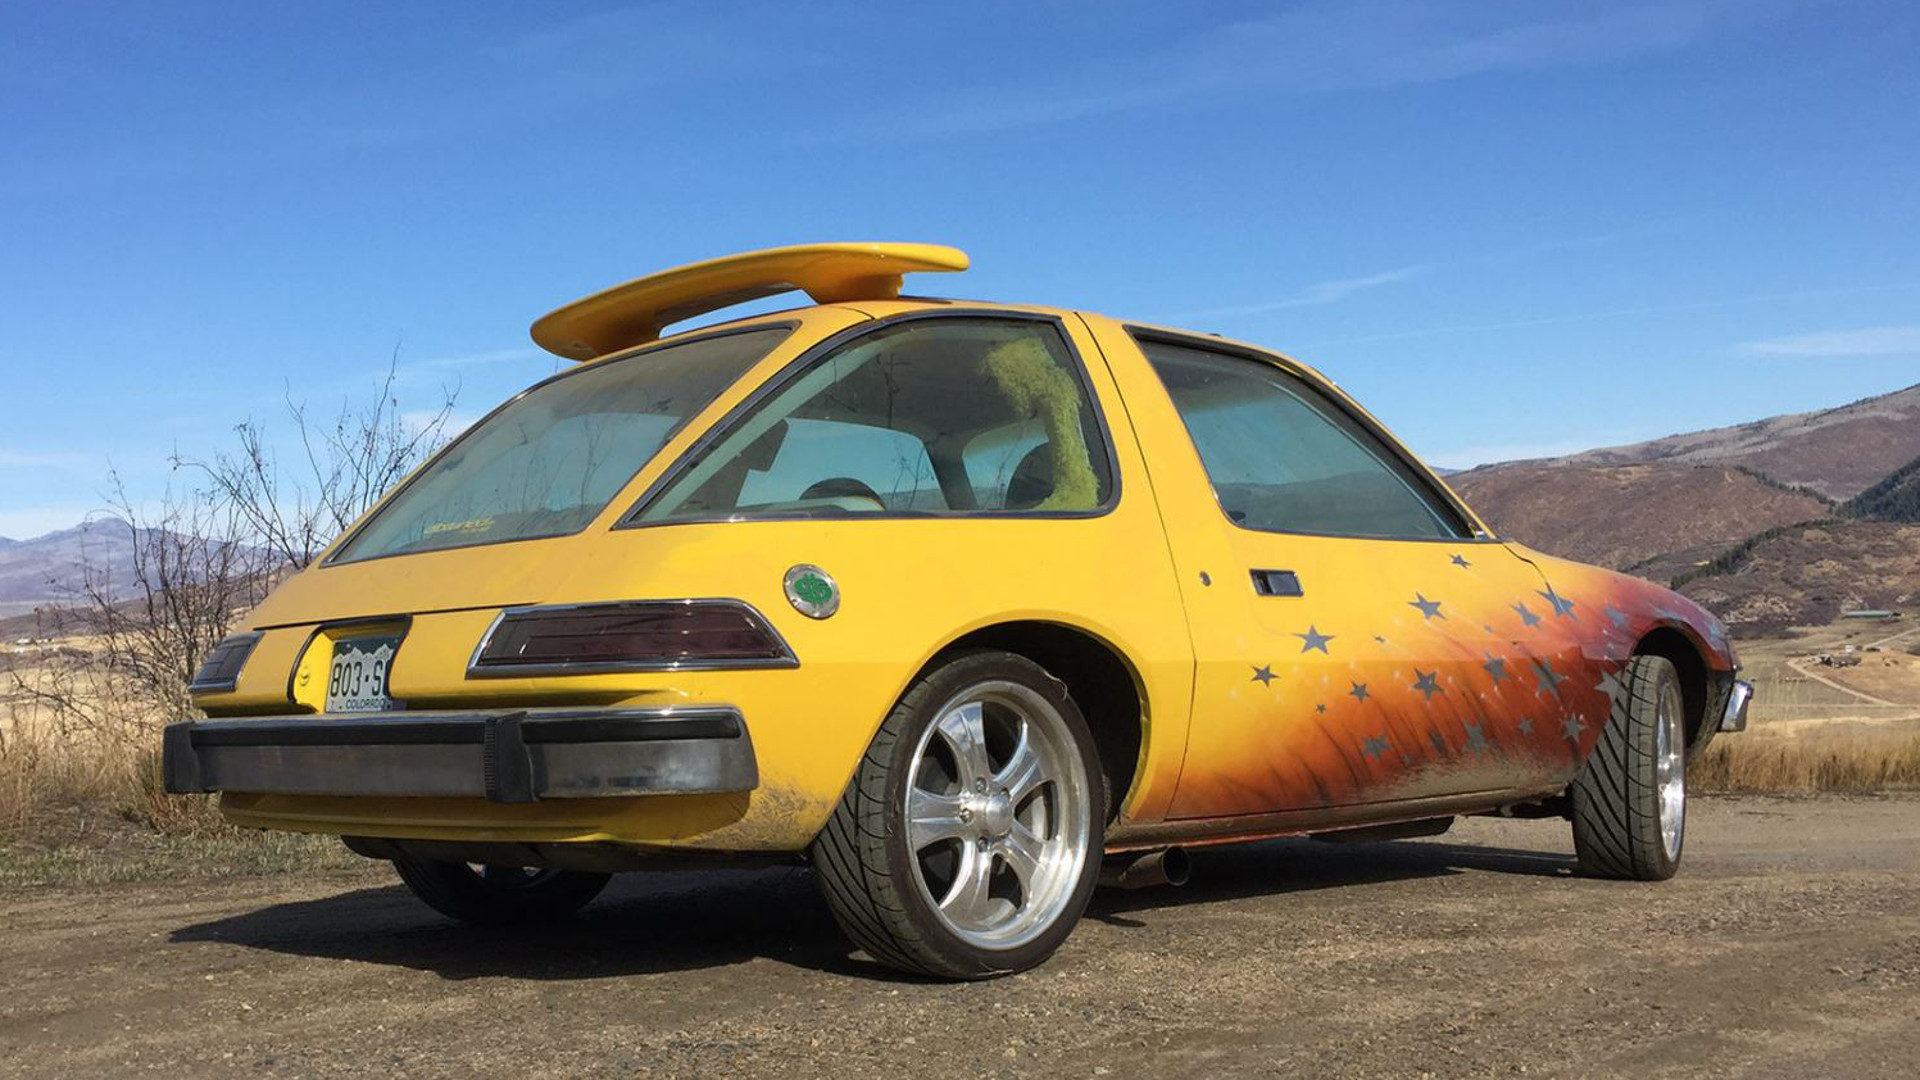 This Pimp My Ride AMC Pacer for Sale in Denver Has Seen Some Horrors ...